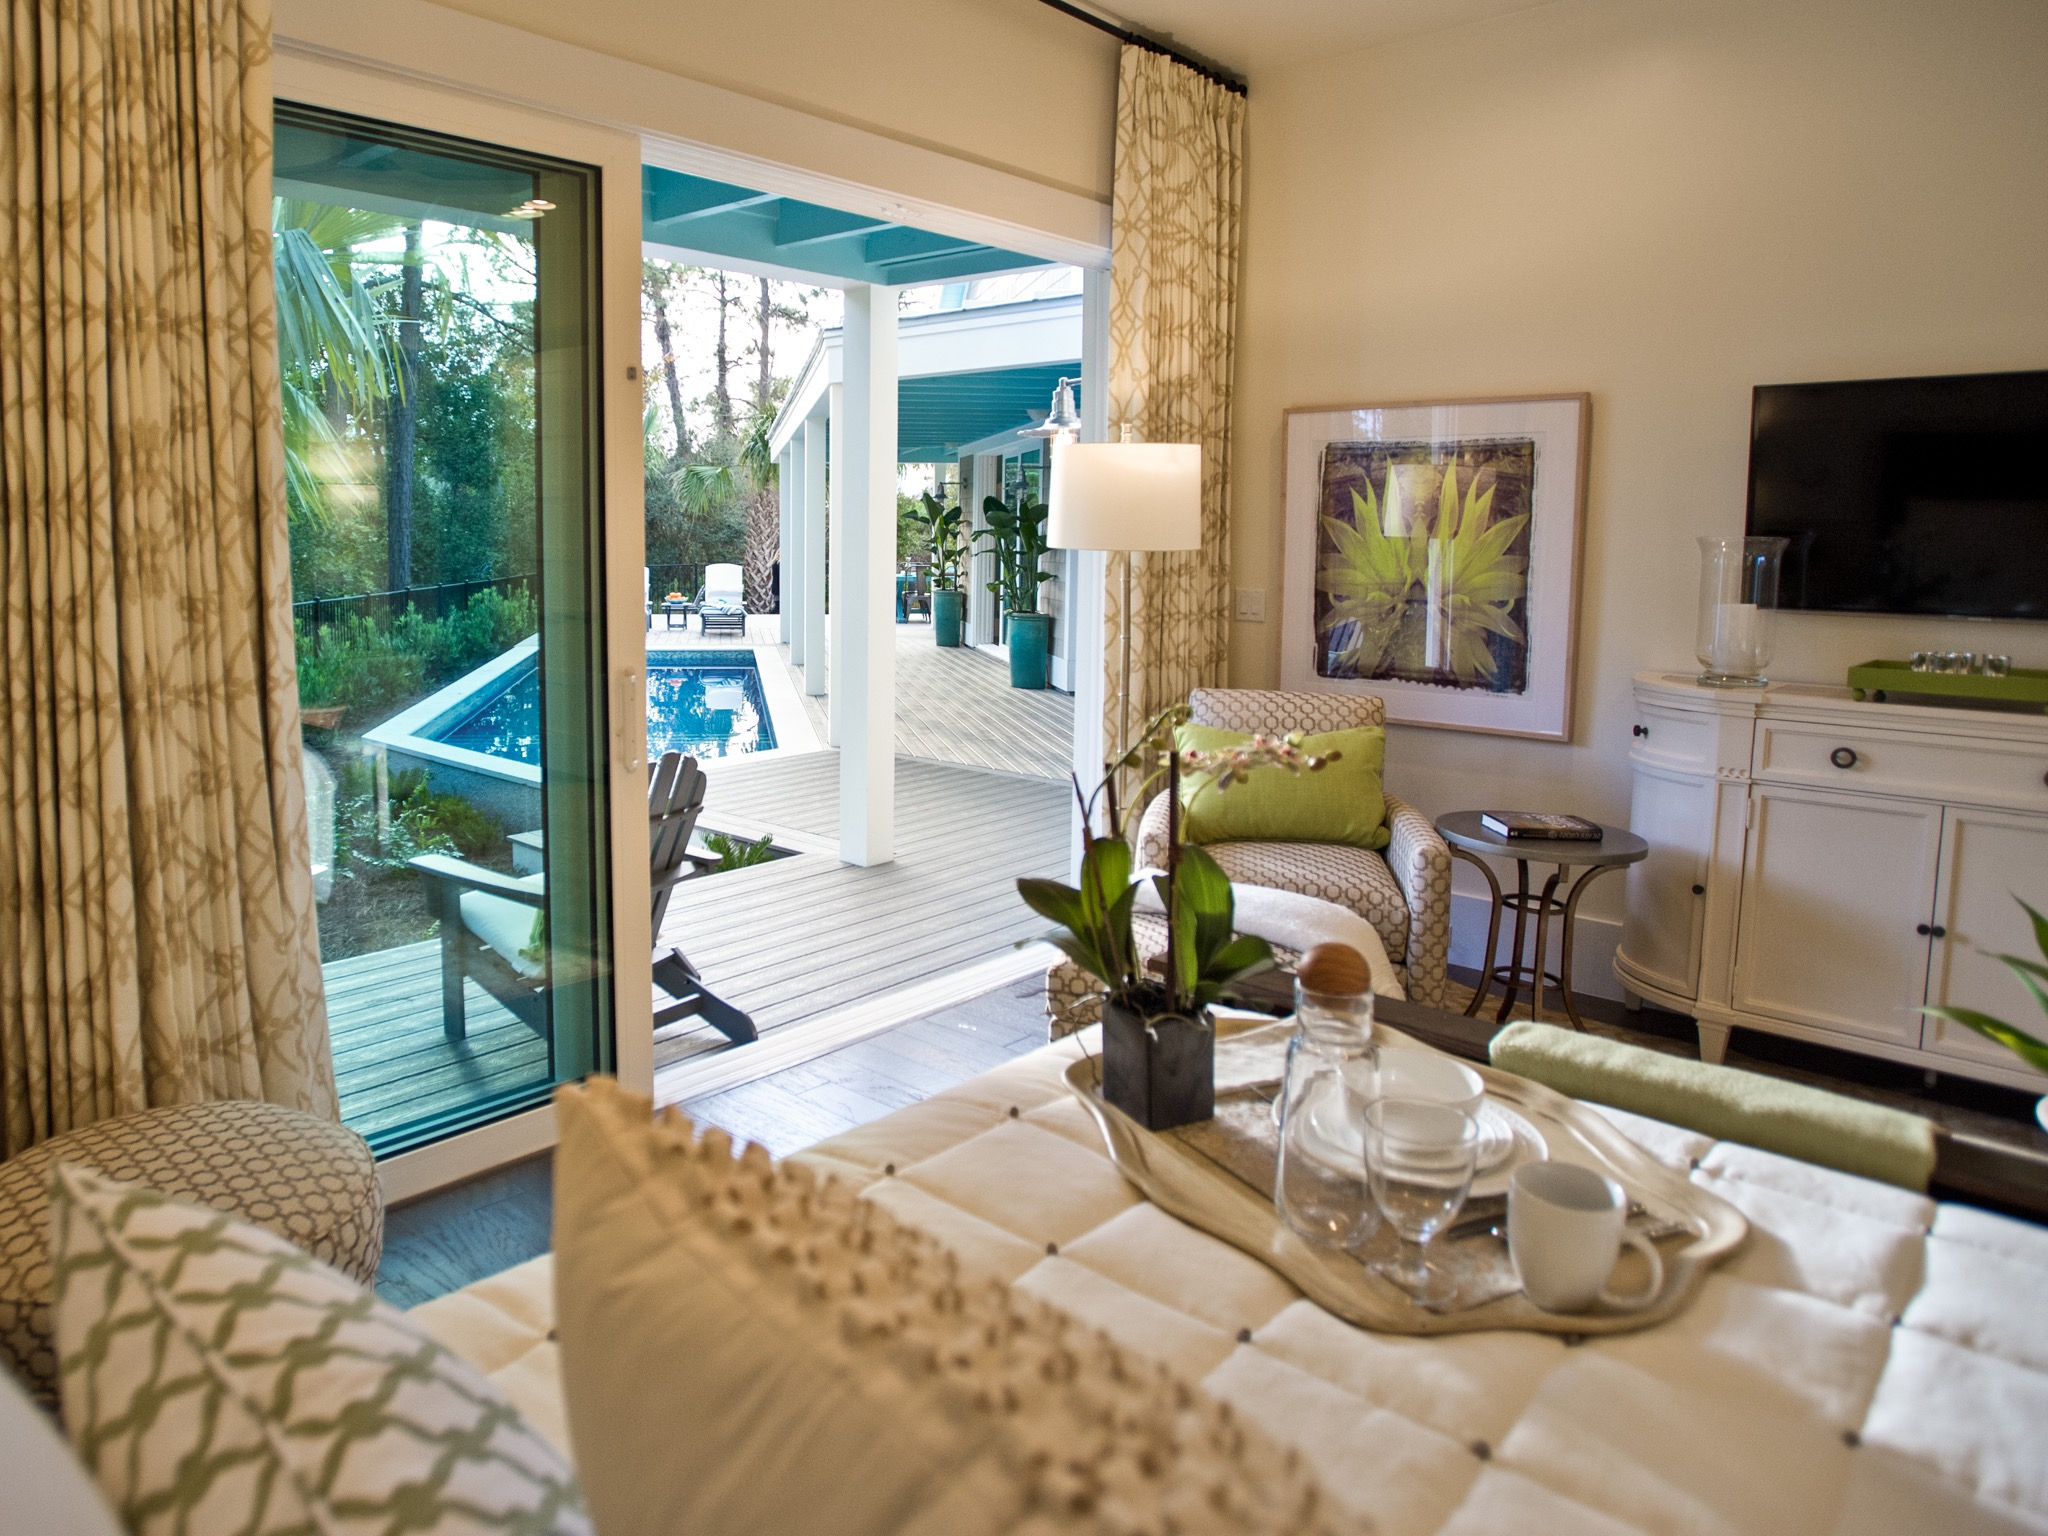 Luxurious Modern Master Bedroom With Sliding Door To Access Poolside Deck (View 4 of 13)